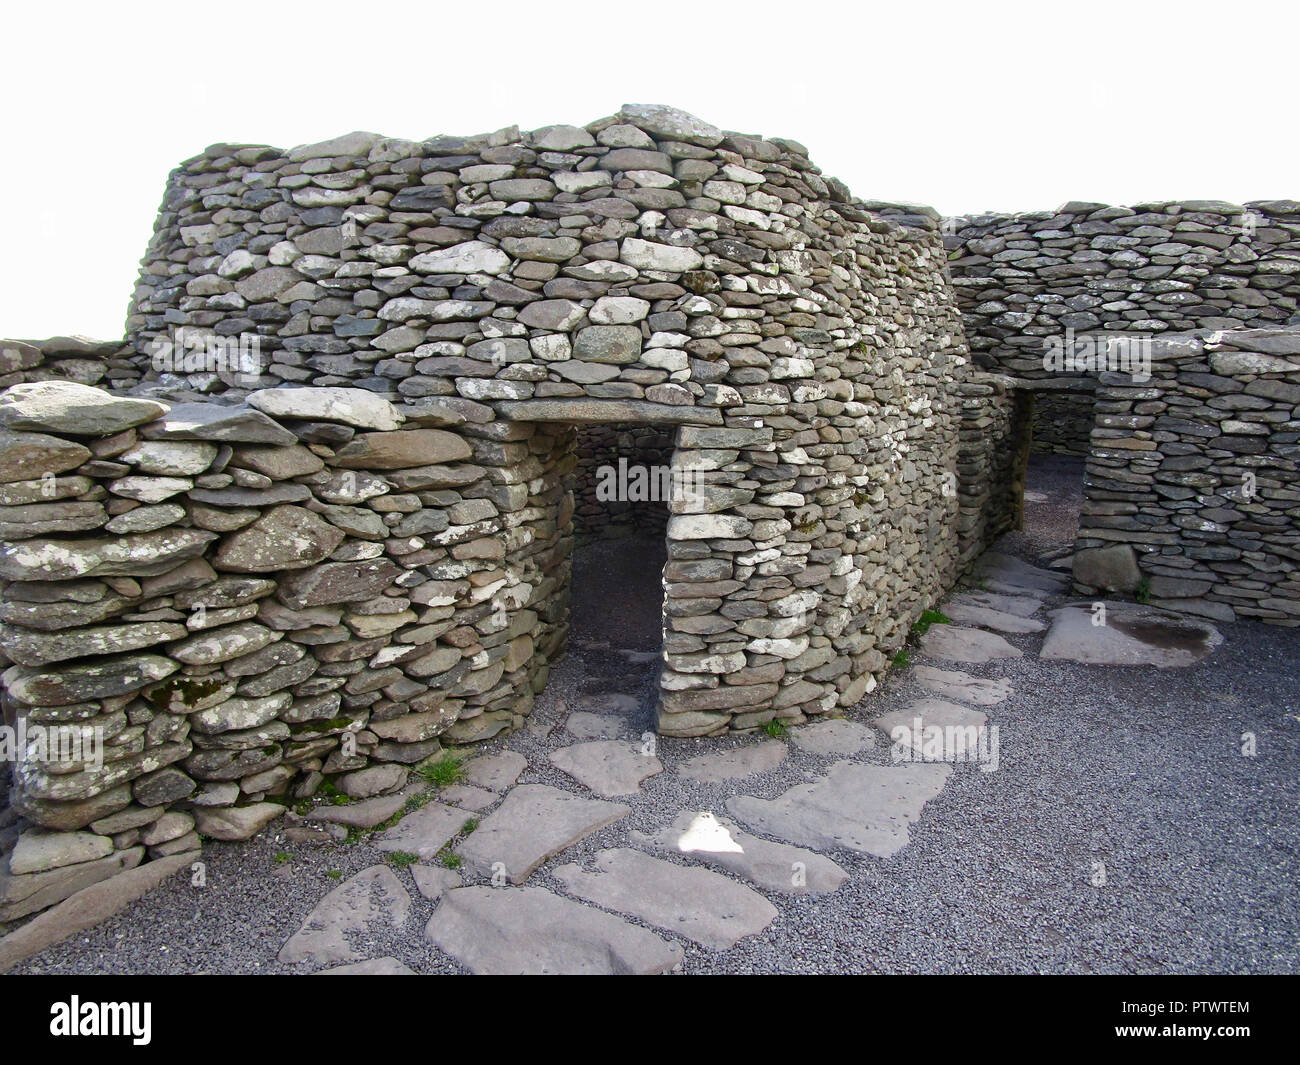 Primitive clochán (beehive hut) dwelling on the Dingle Peninsula in County Kerry, Ireland - Stock Image